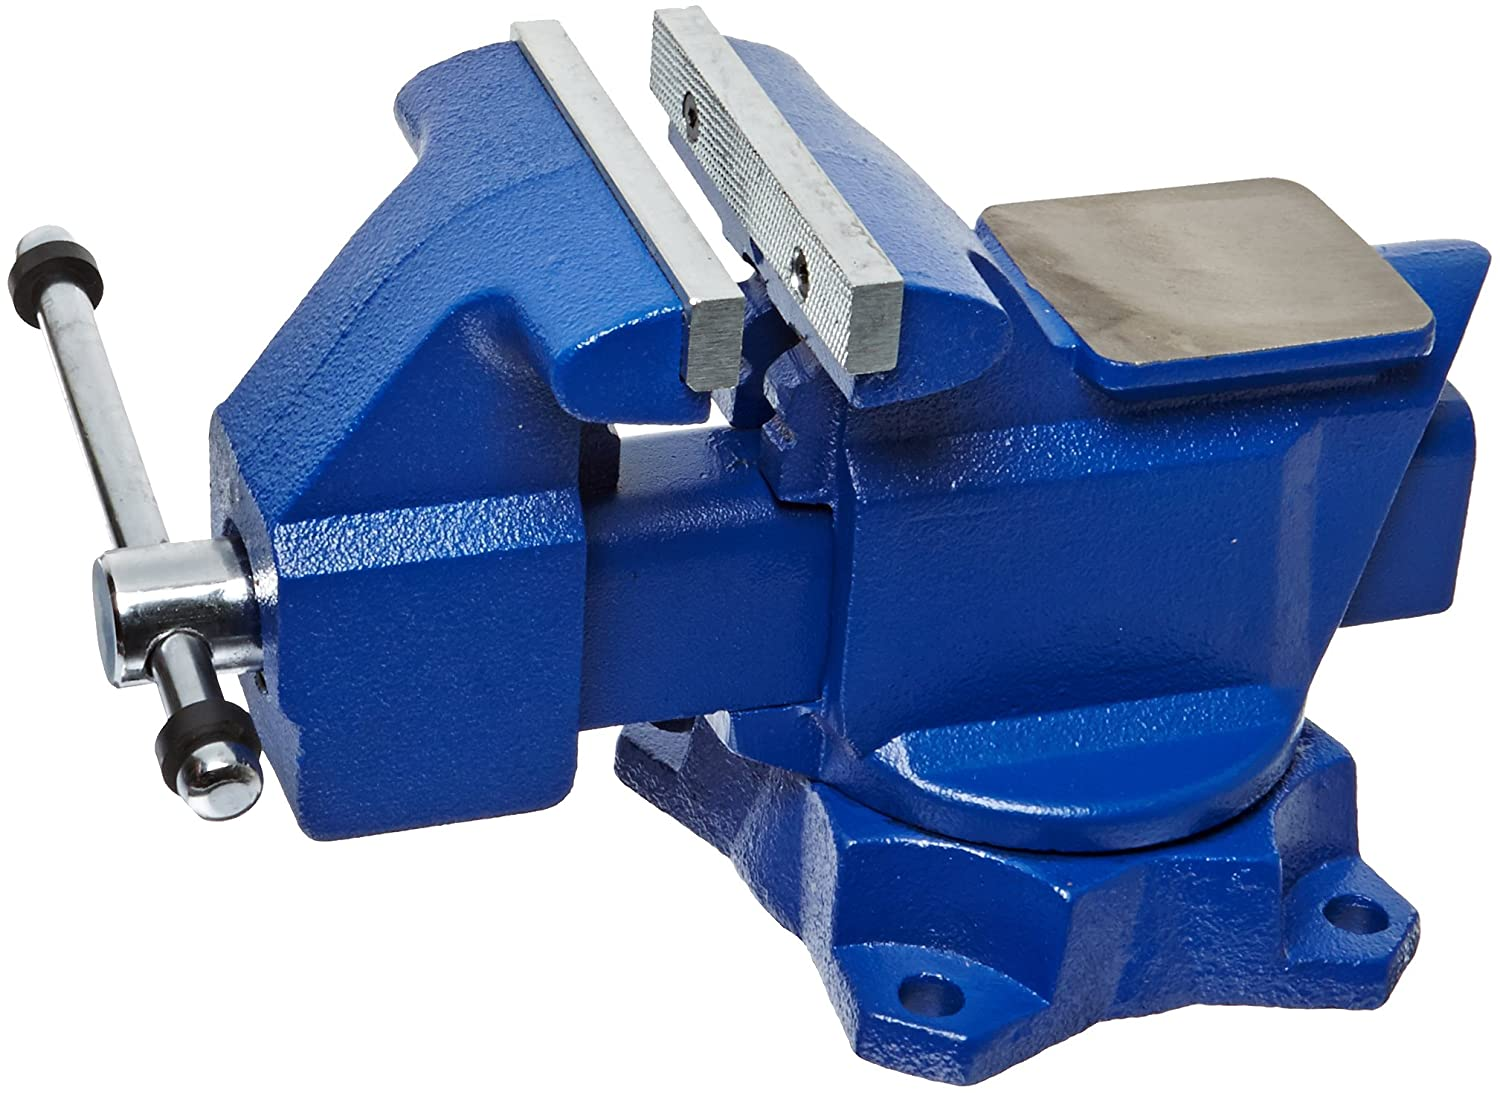 Yost Vises 445 4 5 Apprentice Series Utility Combination Pipe And Bench Vise W Ebay